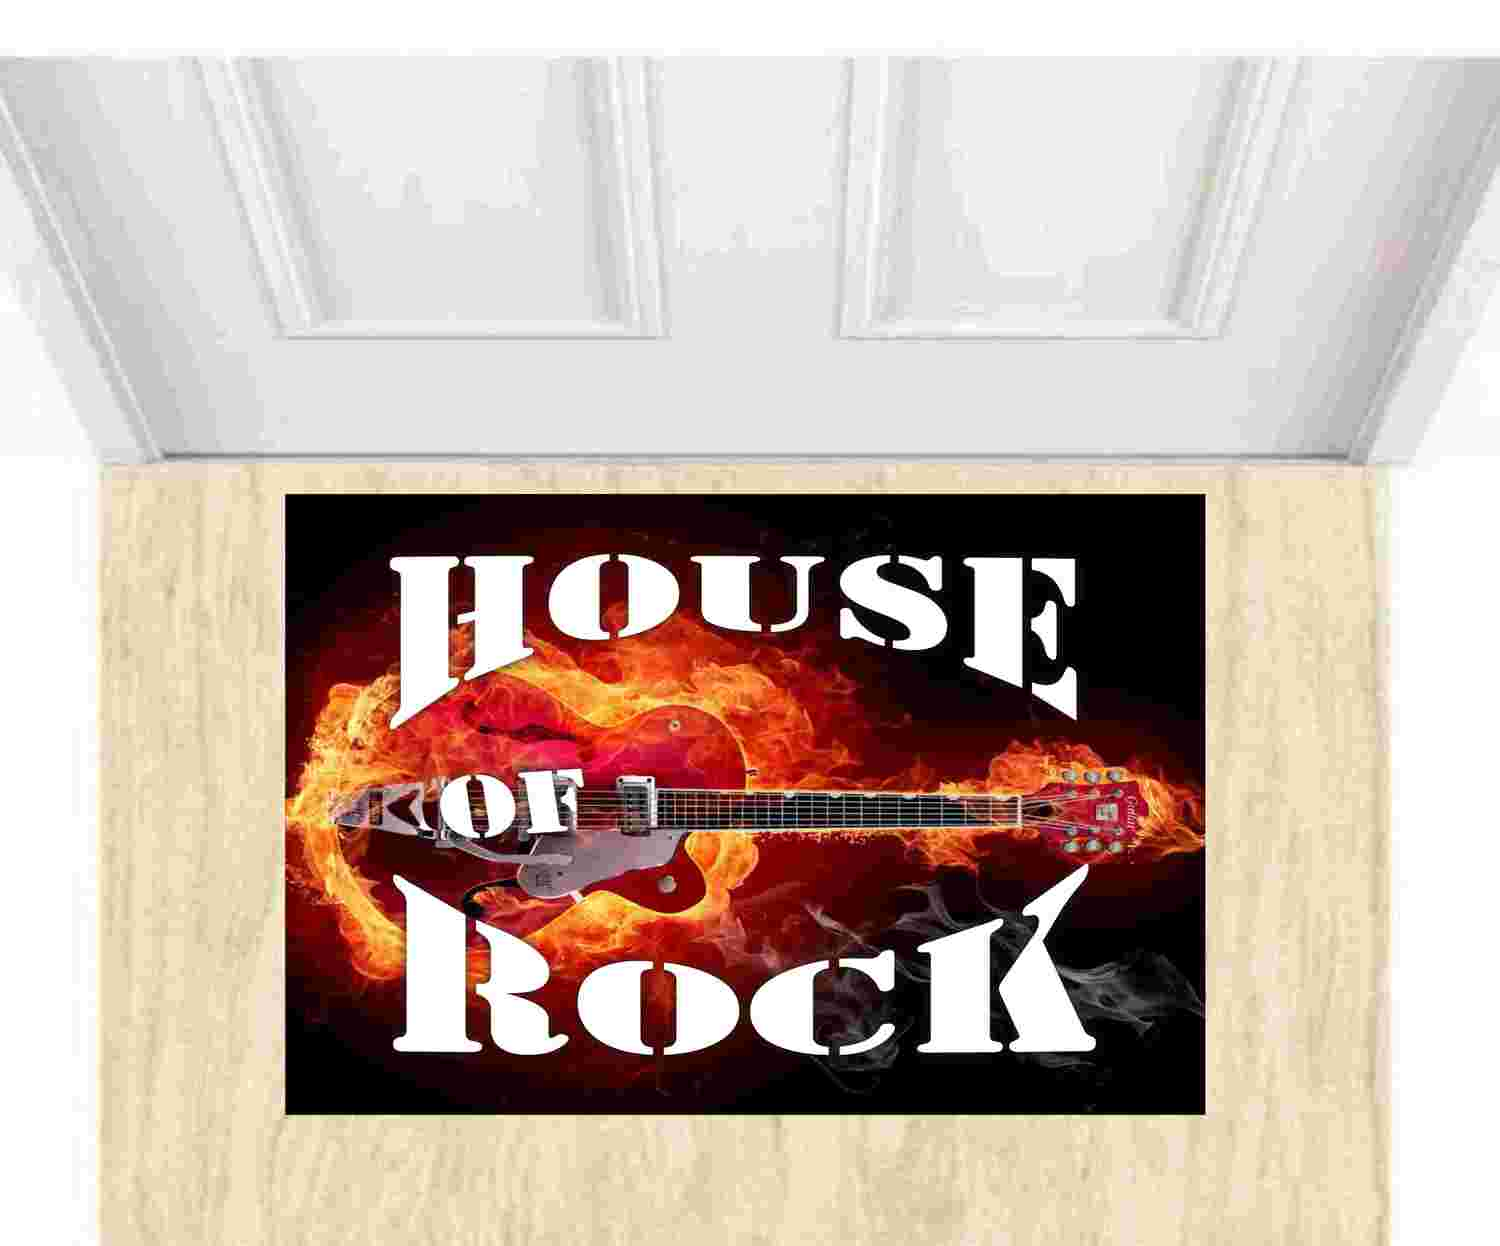 Tapete Capacho Decorativo house of rock